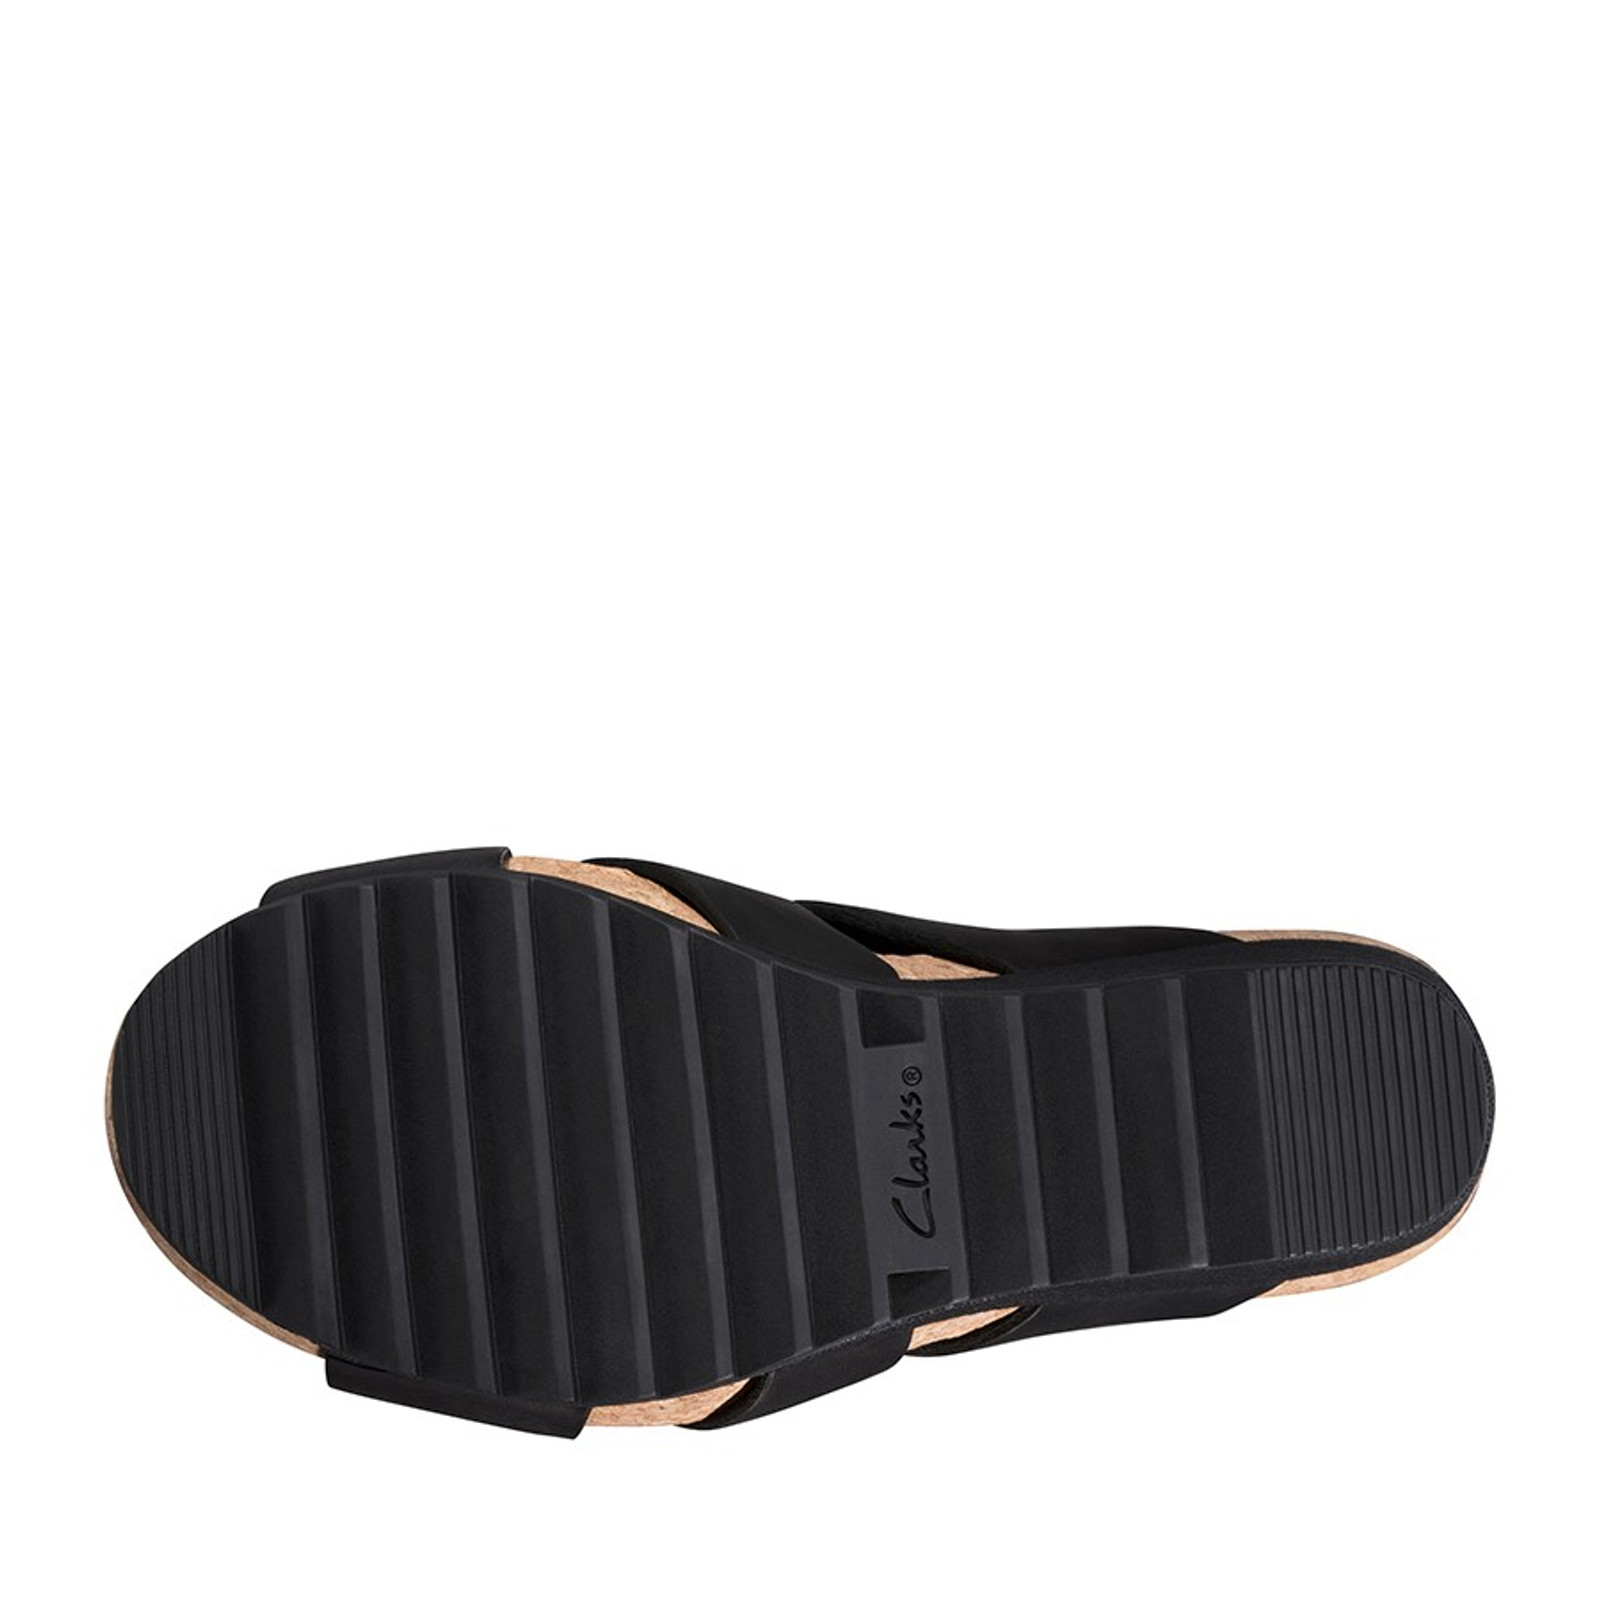 Clarks Womens FLEX SUN Black Leather